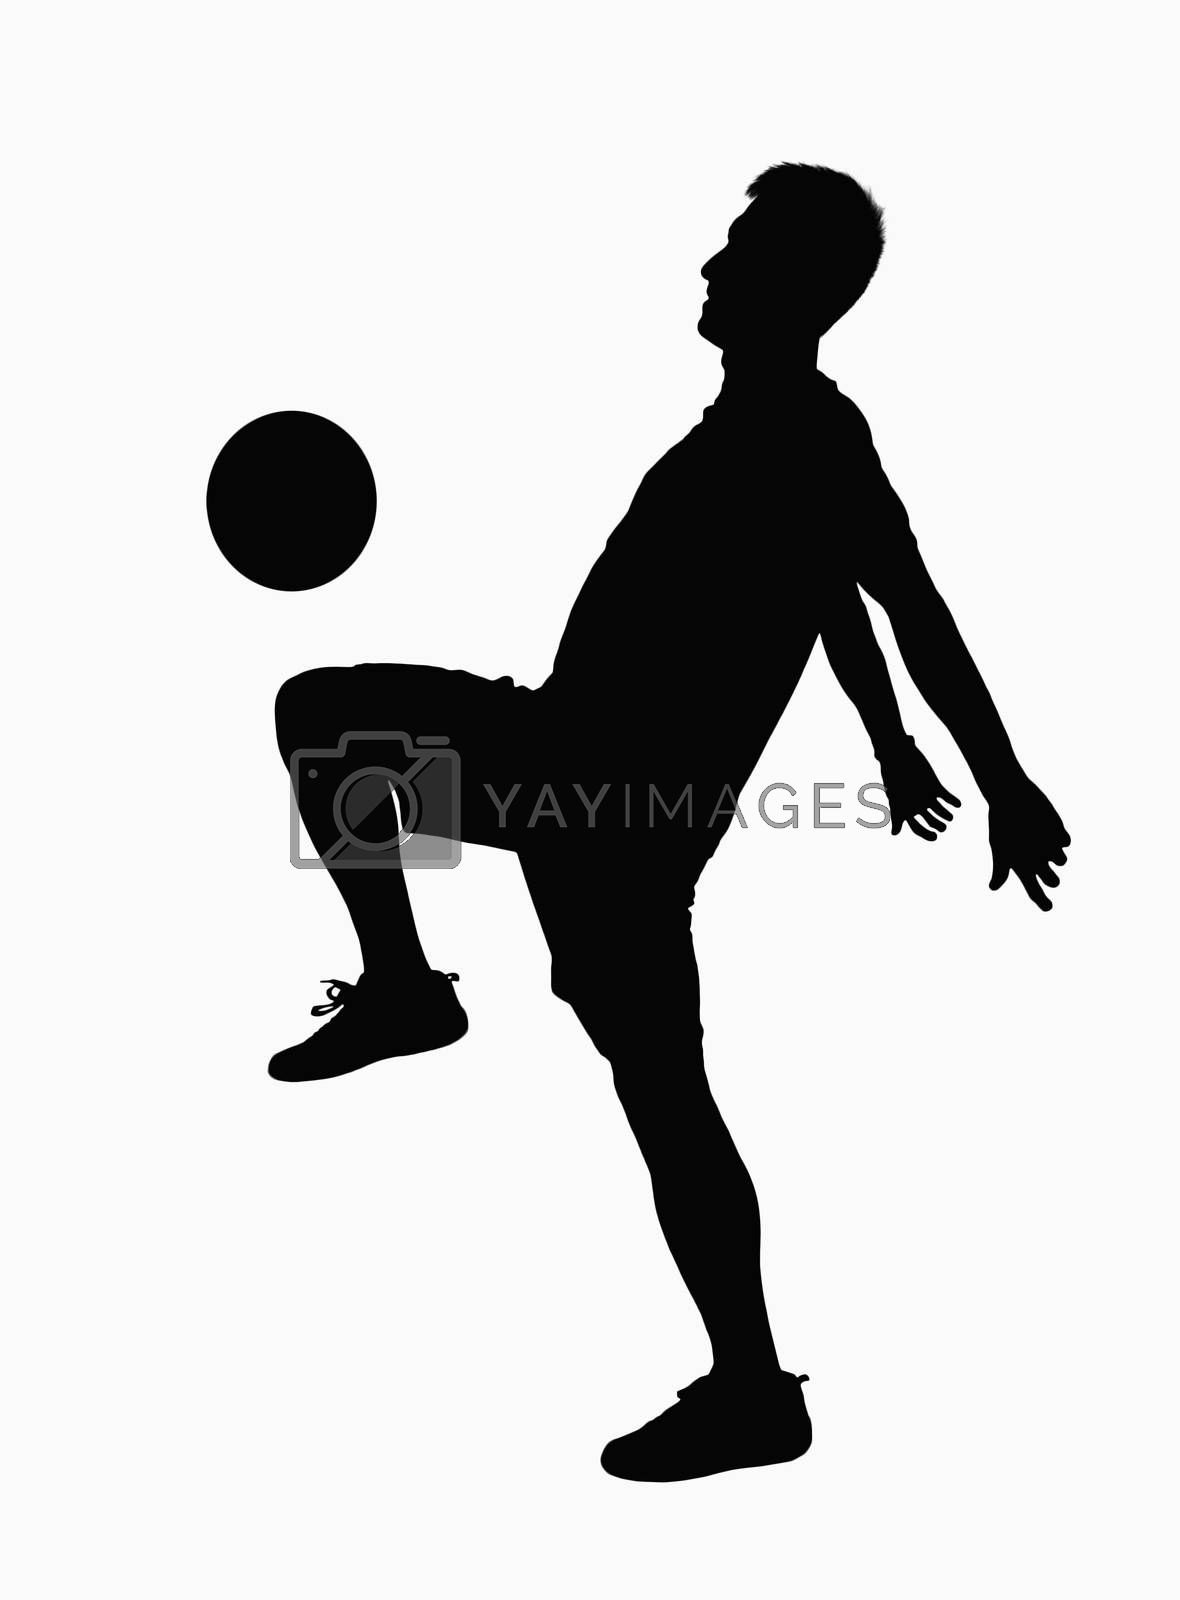 Silhouette of soccer player practicing juggling the ball.